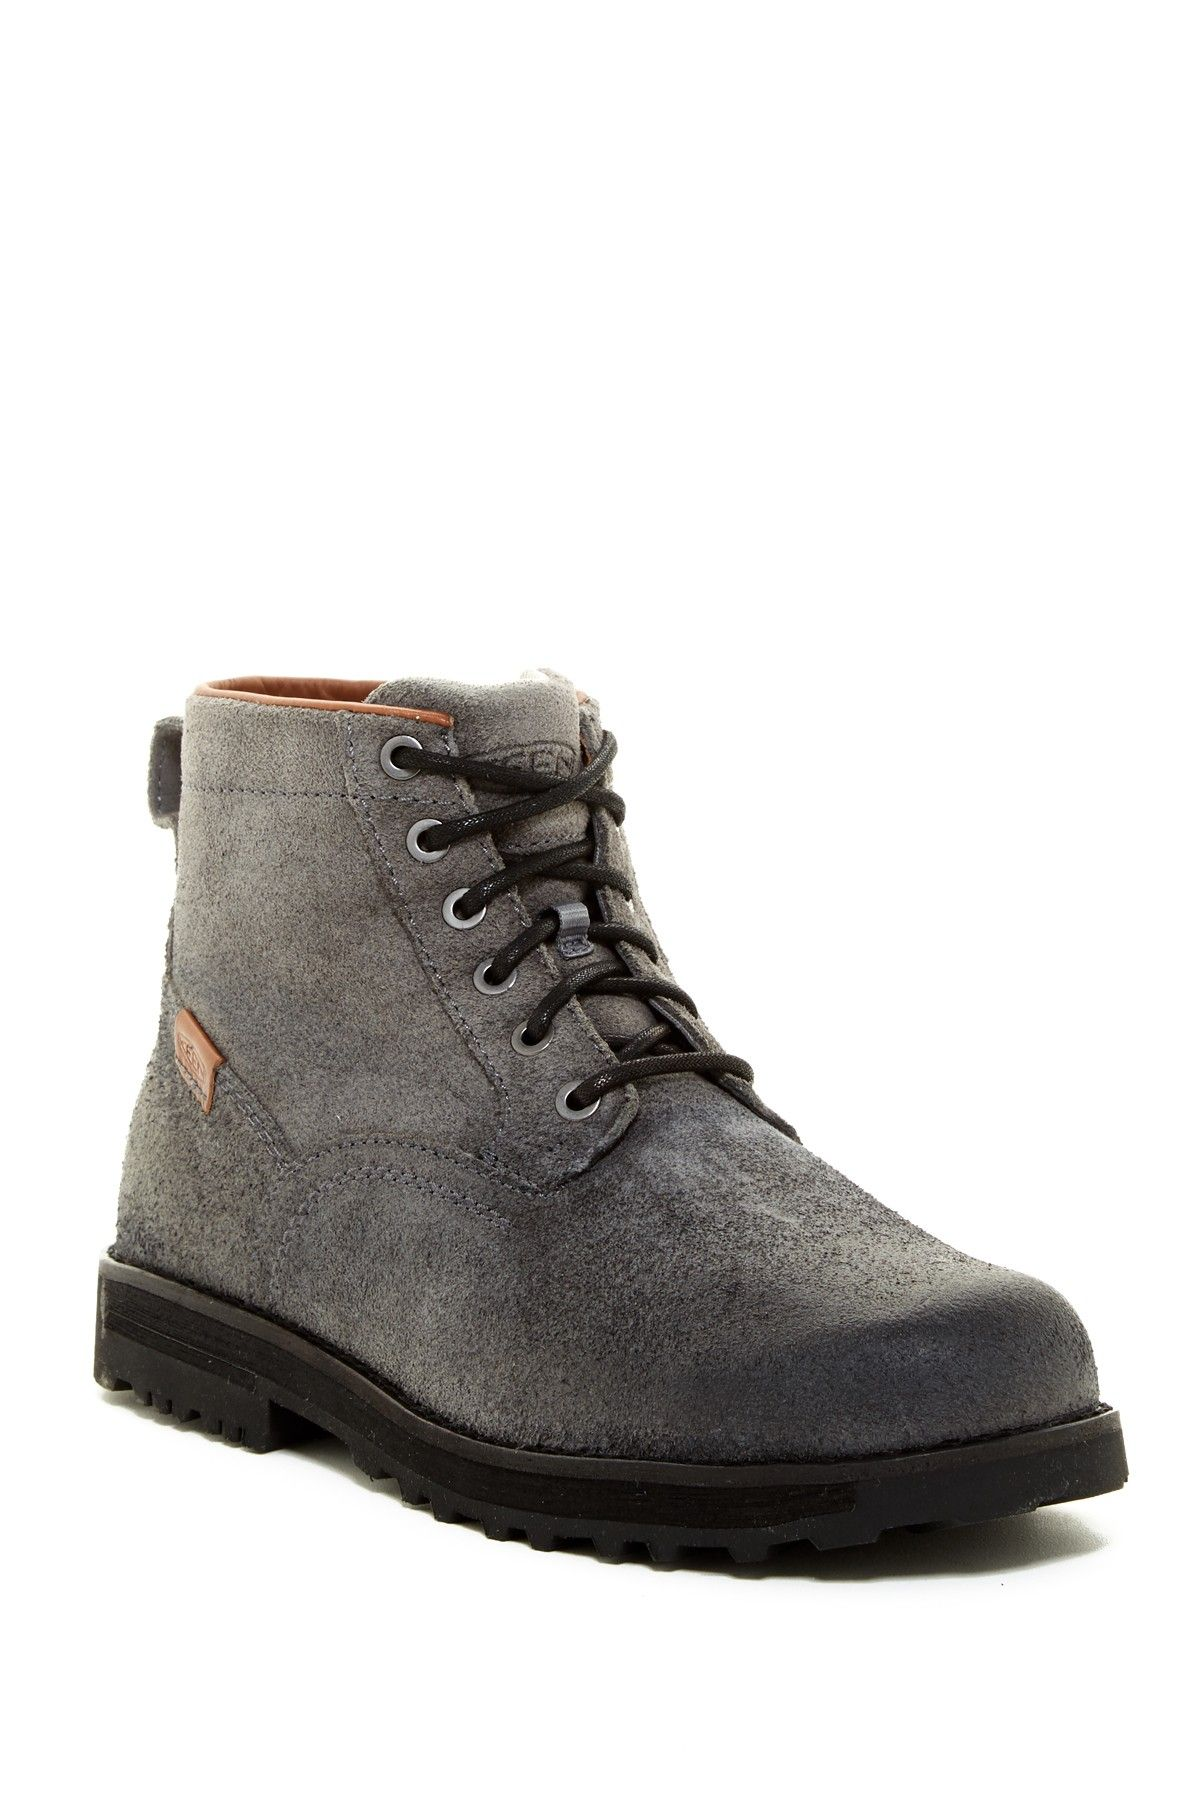 The 59 Boot Boots, Hiking boots, Nordstrom